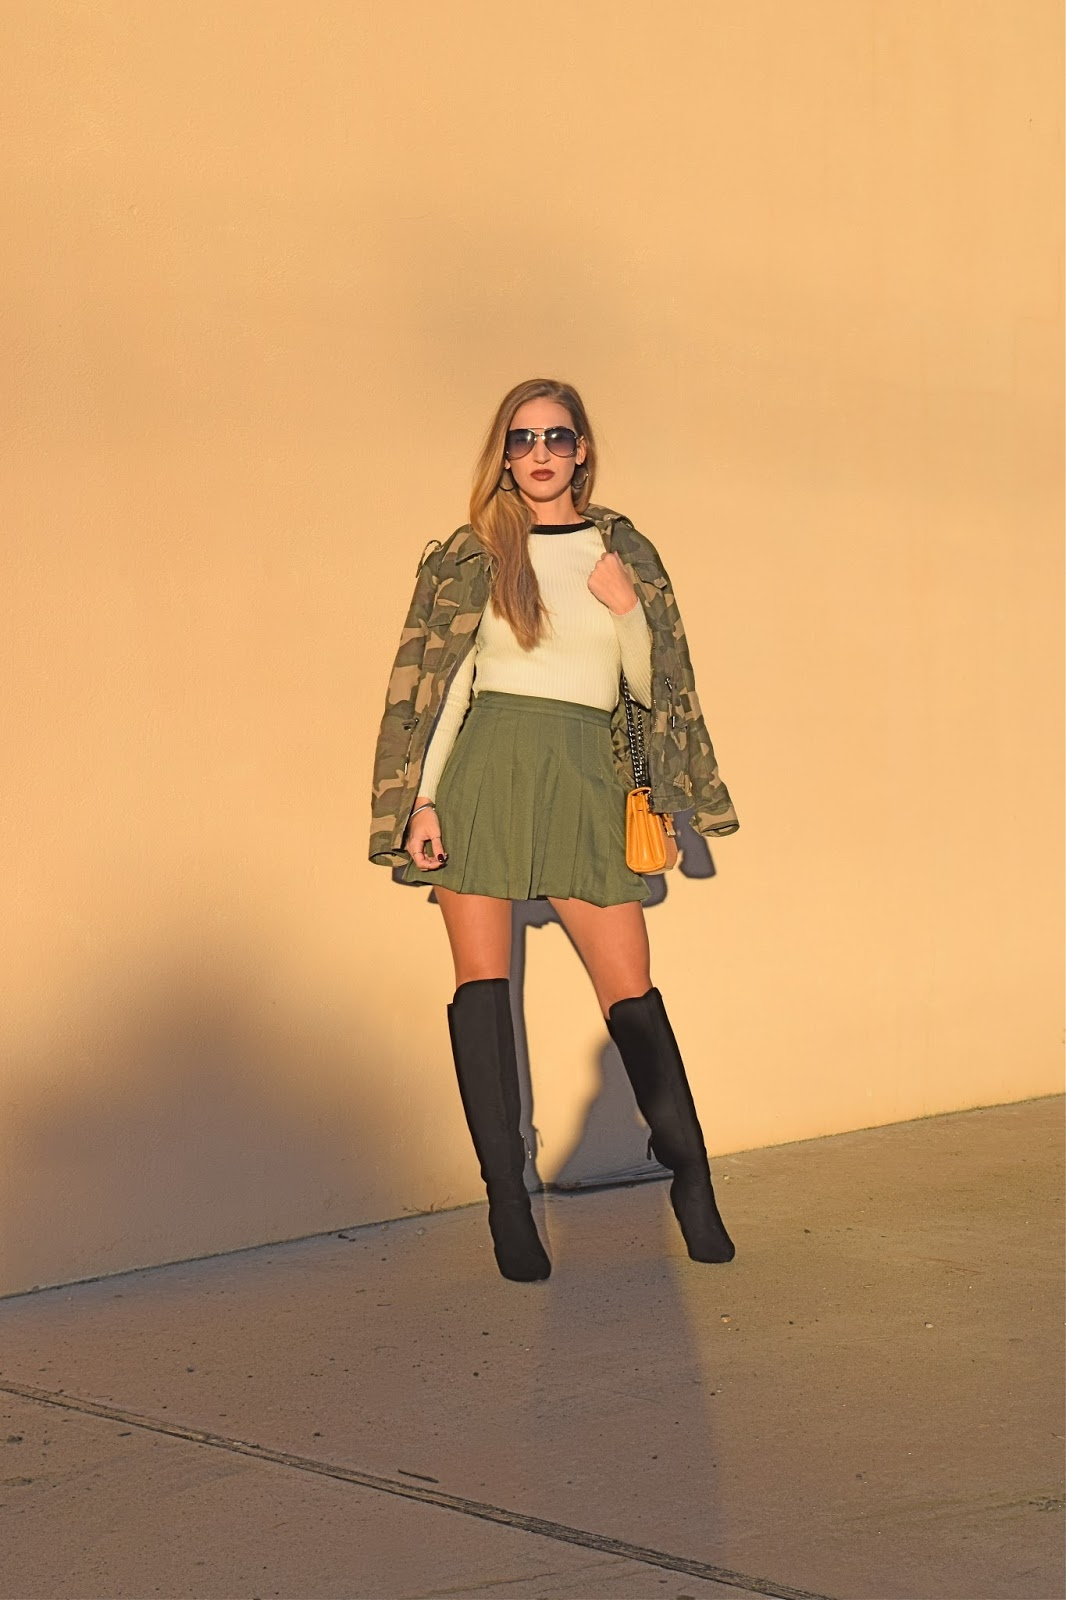 His and Her's matching camo jackets, his and her's outfits. forever21 olive green pleated skirt. Over the knee boots with pleated skirt, camo jacket with over the knee boots